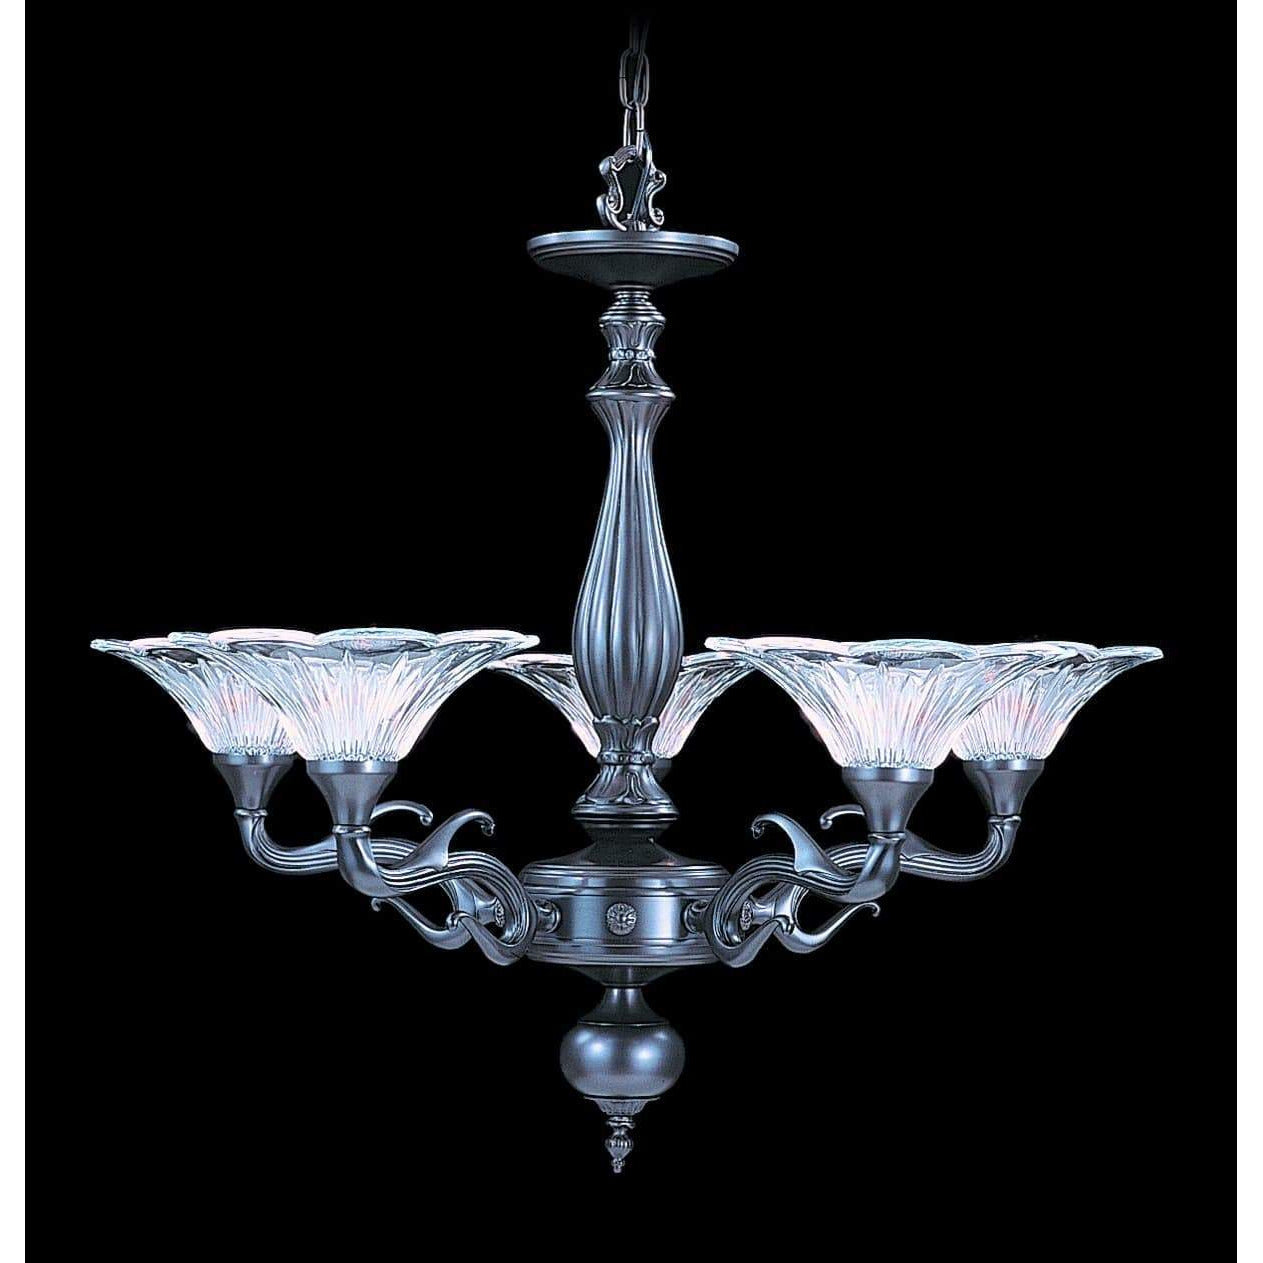 Framburg Chandeliers Mahogany Bronze 5-Light Mahogany Bronze Geneva Dining Chandelier by Framburg 8625